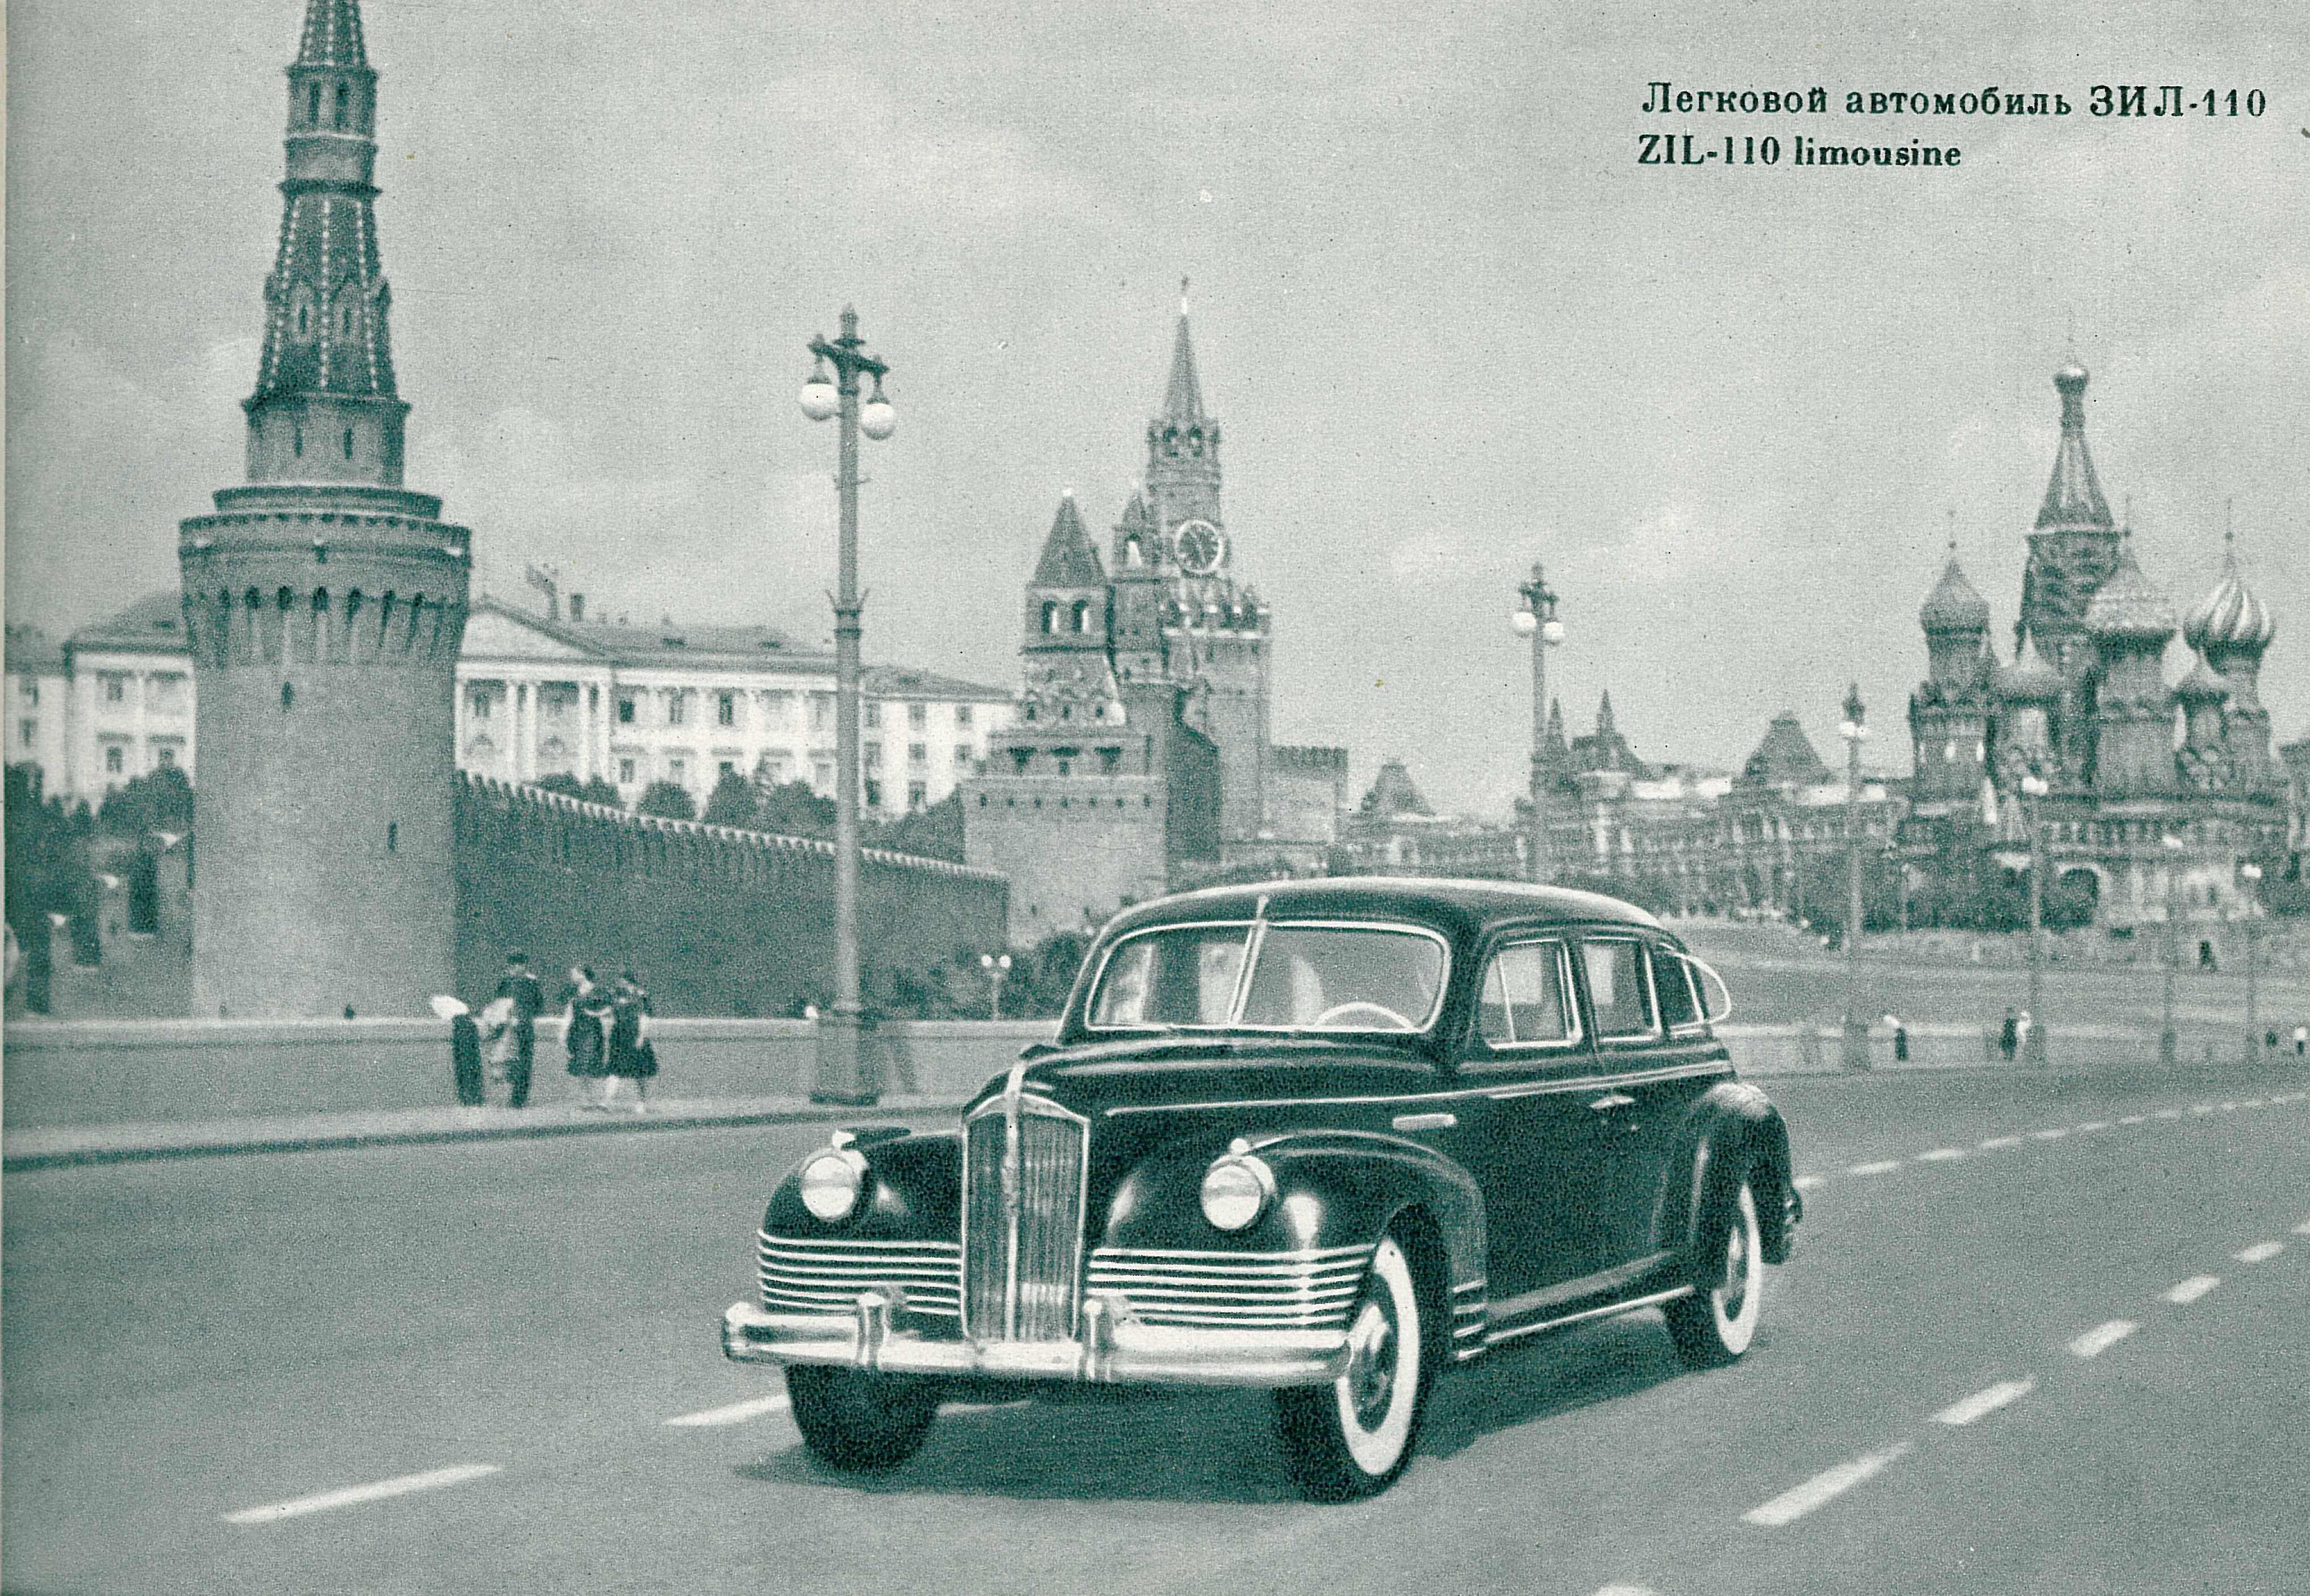 ZIL-110 Limousine driving in front of the Kremlin and St. Basil's Cathedral (Circa 1956-1959)